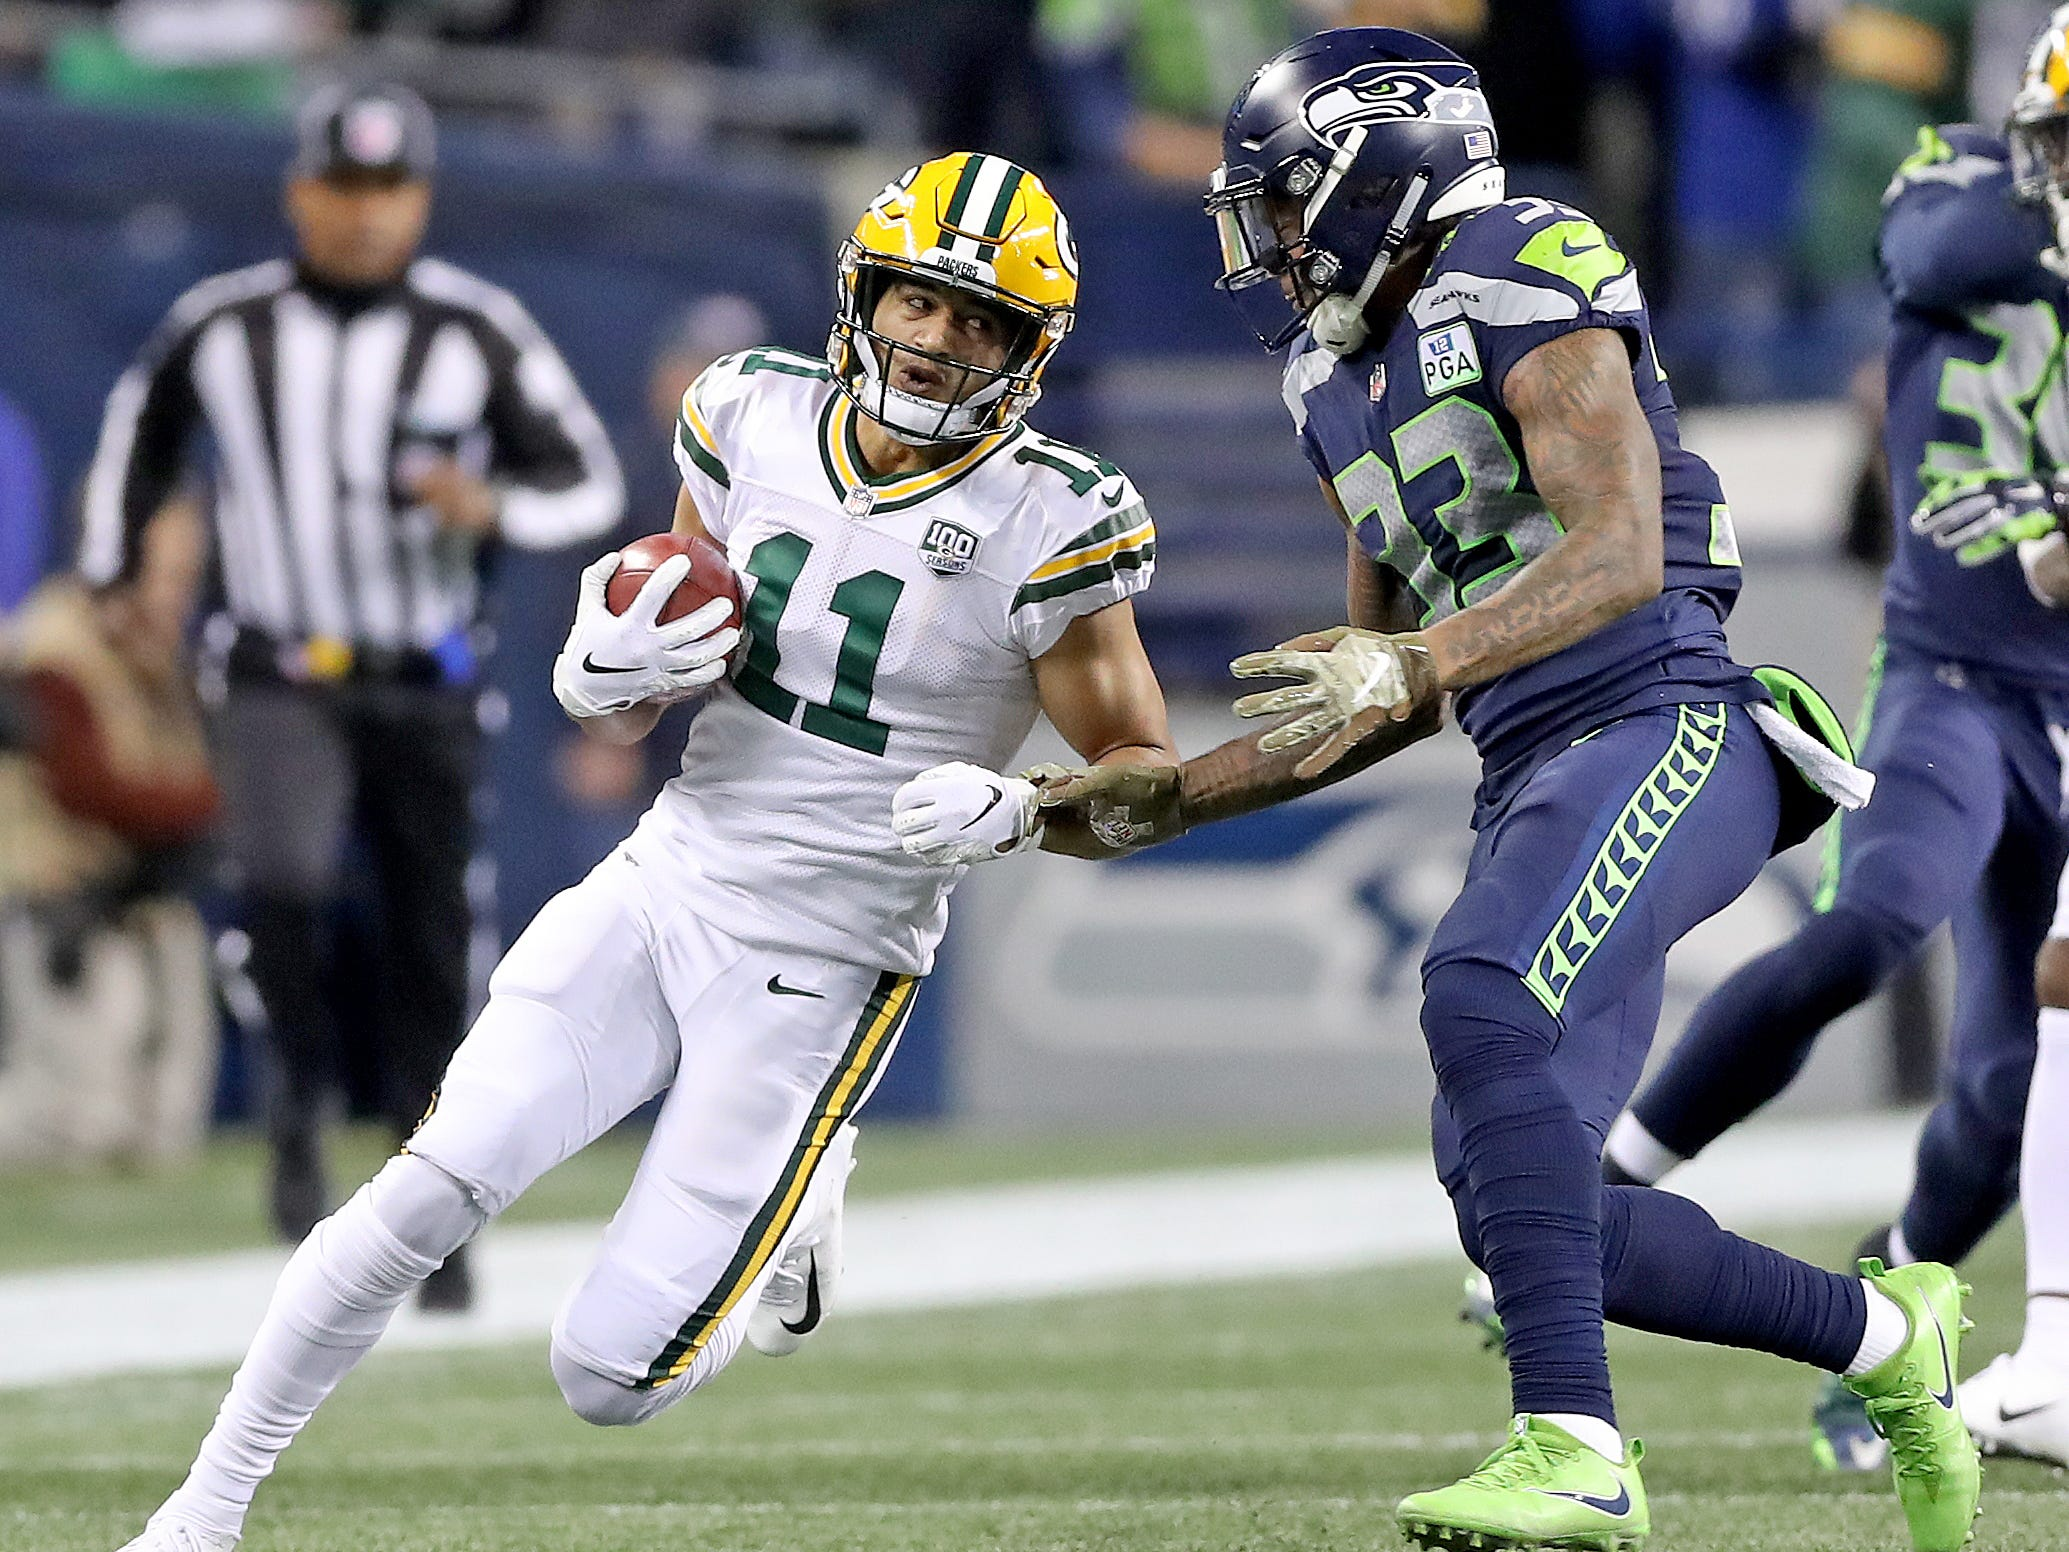 Green Bay Packers wide receiver Trevor Davis (11) on a kickoff return against the Seattle Seahawks at CenturyLink Field Thursday, November 15, 2018 in Seattle, WA. Jim Matthews/USA TODAY NETWORK-Wis